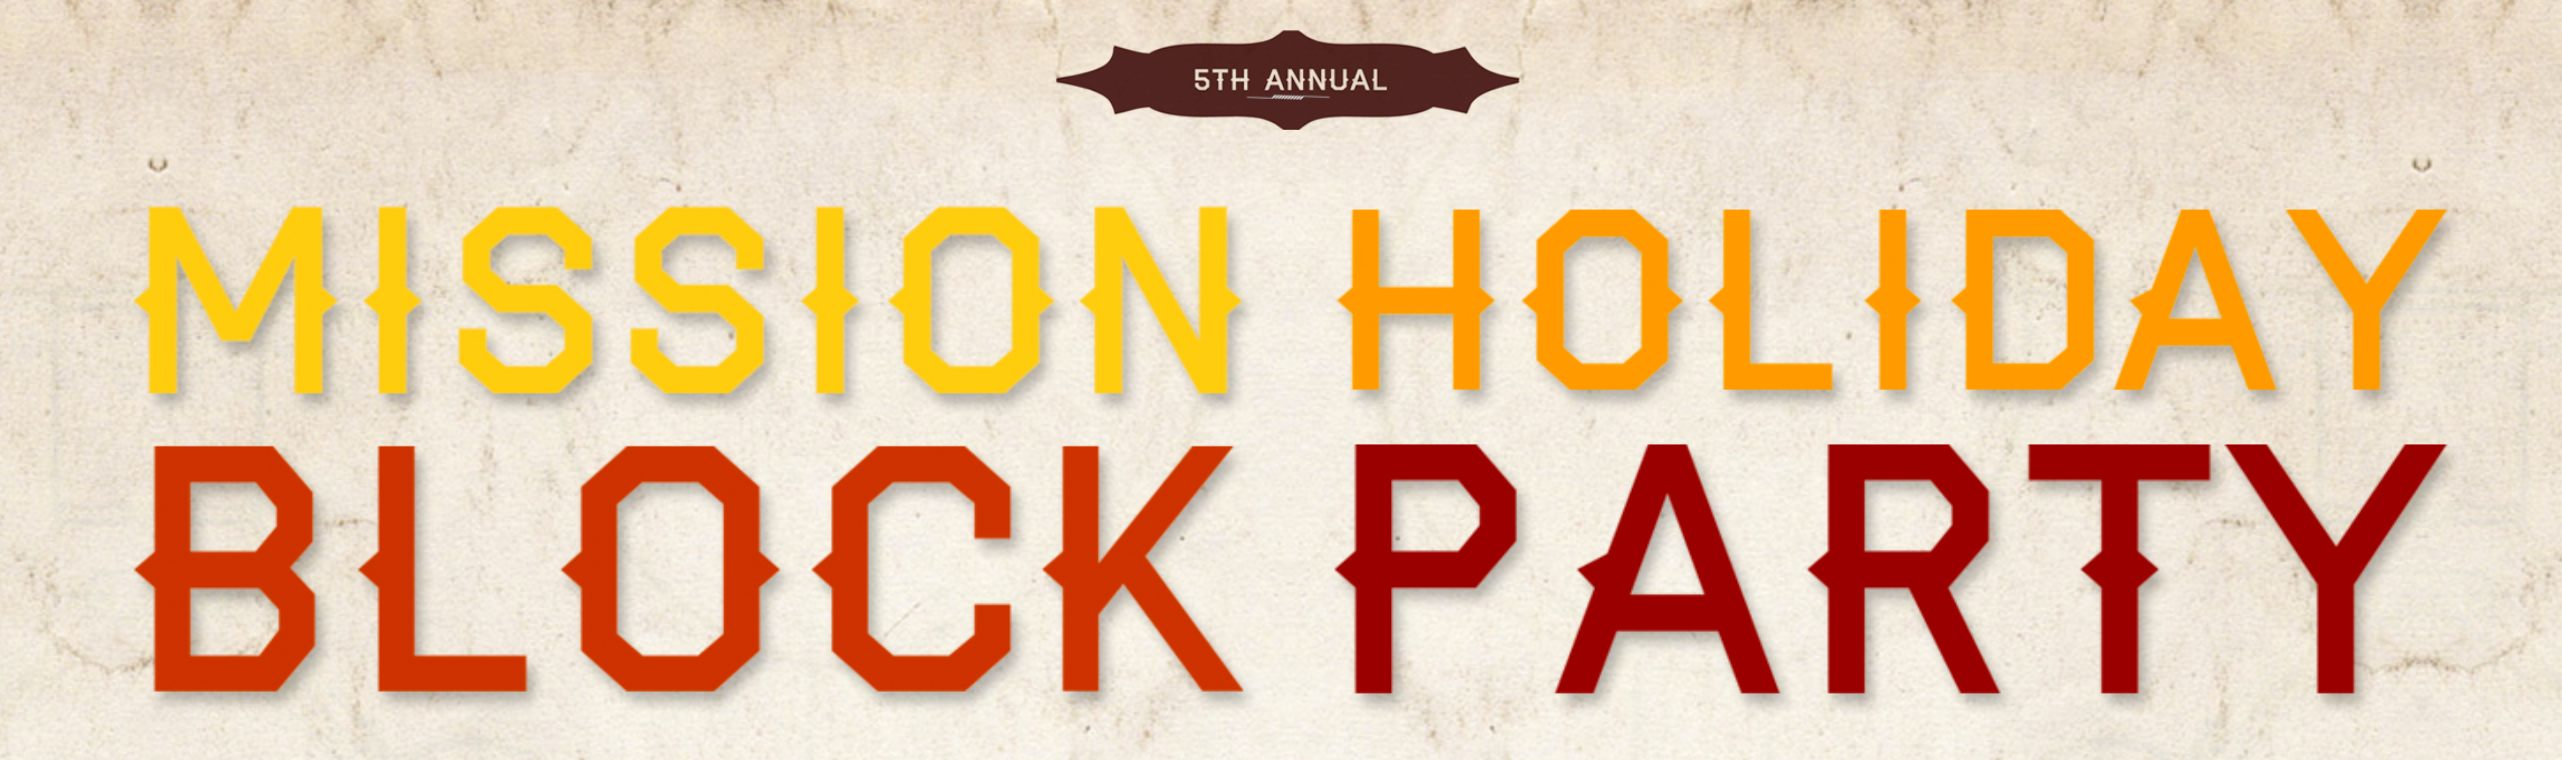 5th Annual Mission Holiday Block Party on Friday